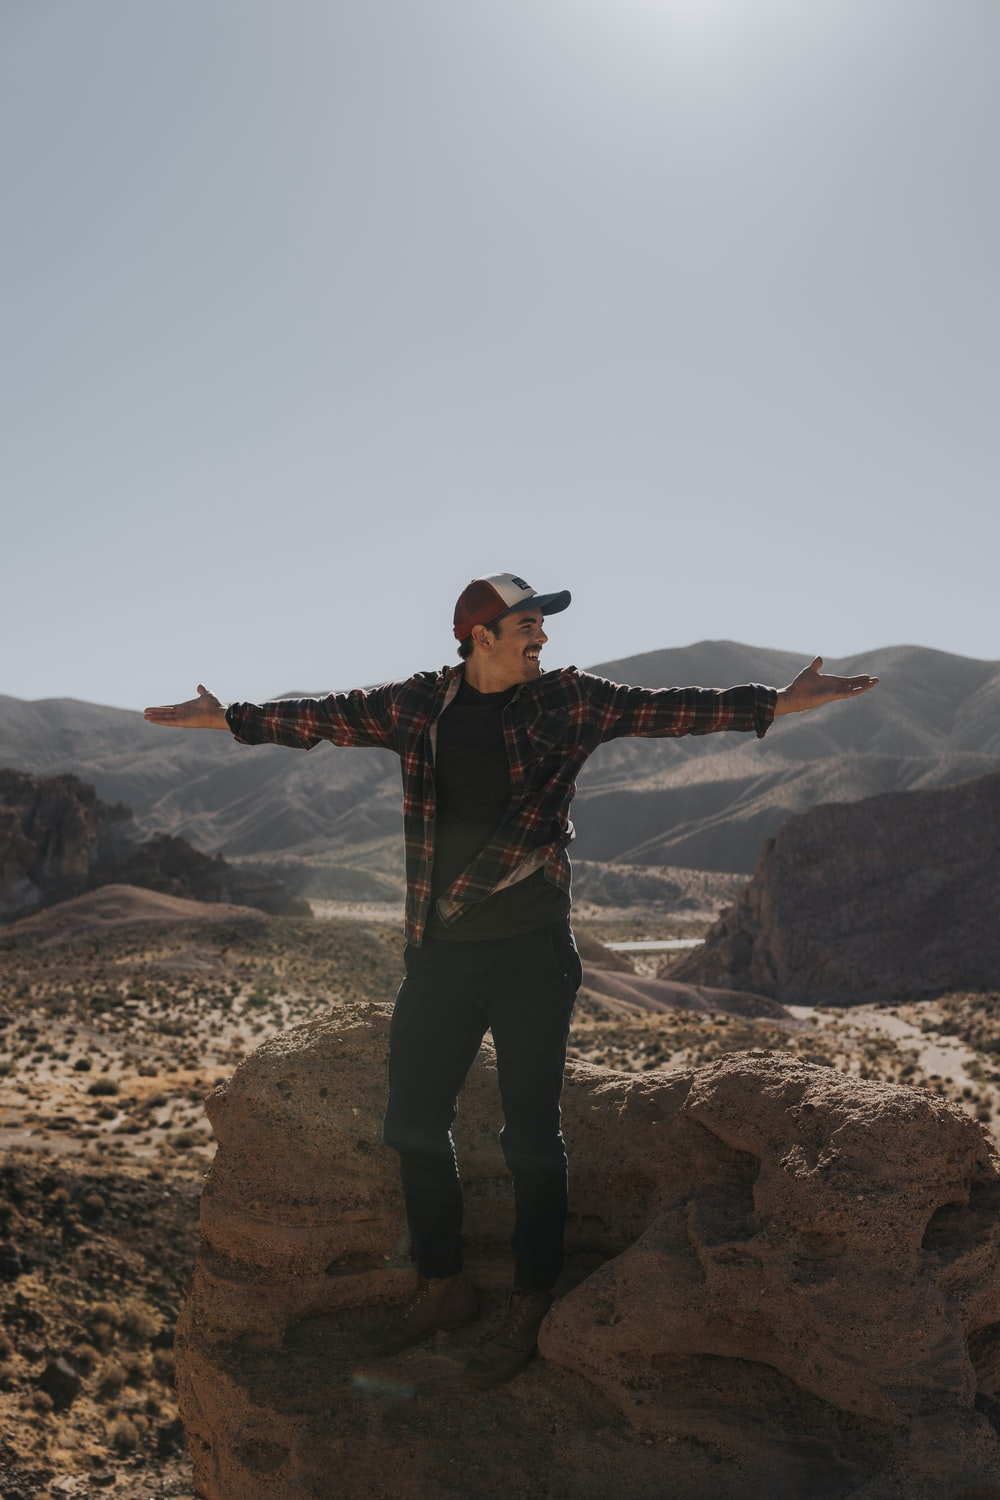 man wide arms open with mountain background